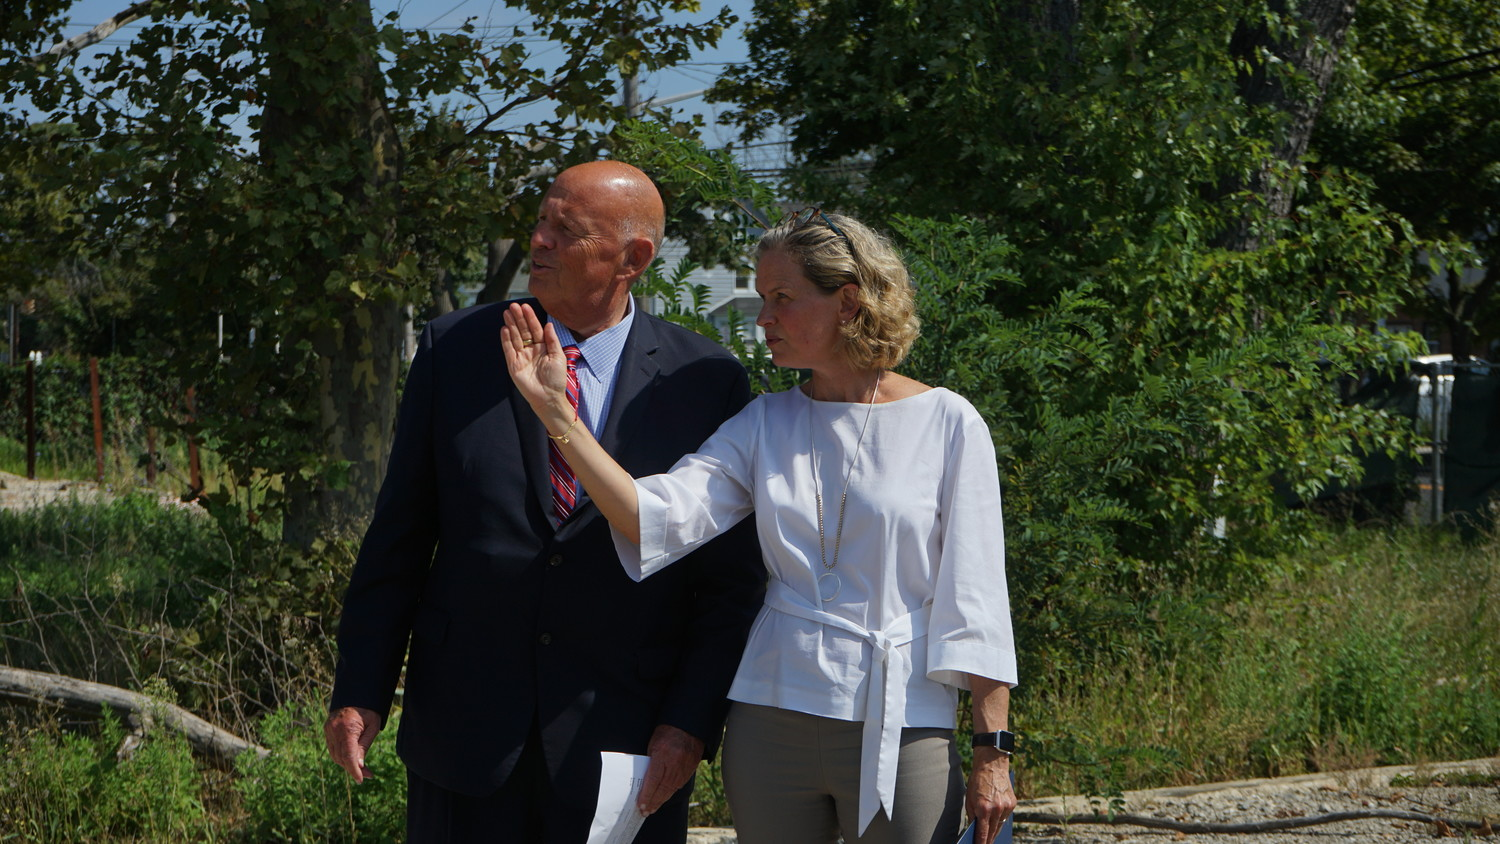 County Executive Laura Curran and Nassau County Industrial Development Agency Chairman Richard Kessel at the site of the proposed development. The two lauded the project as potentially bringing a younger generation of renters to the area.